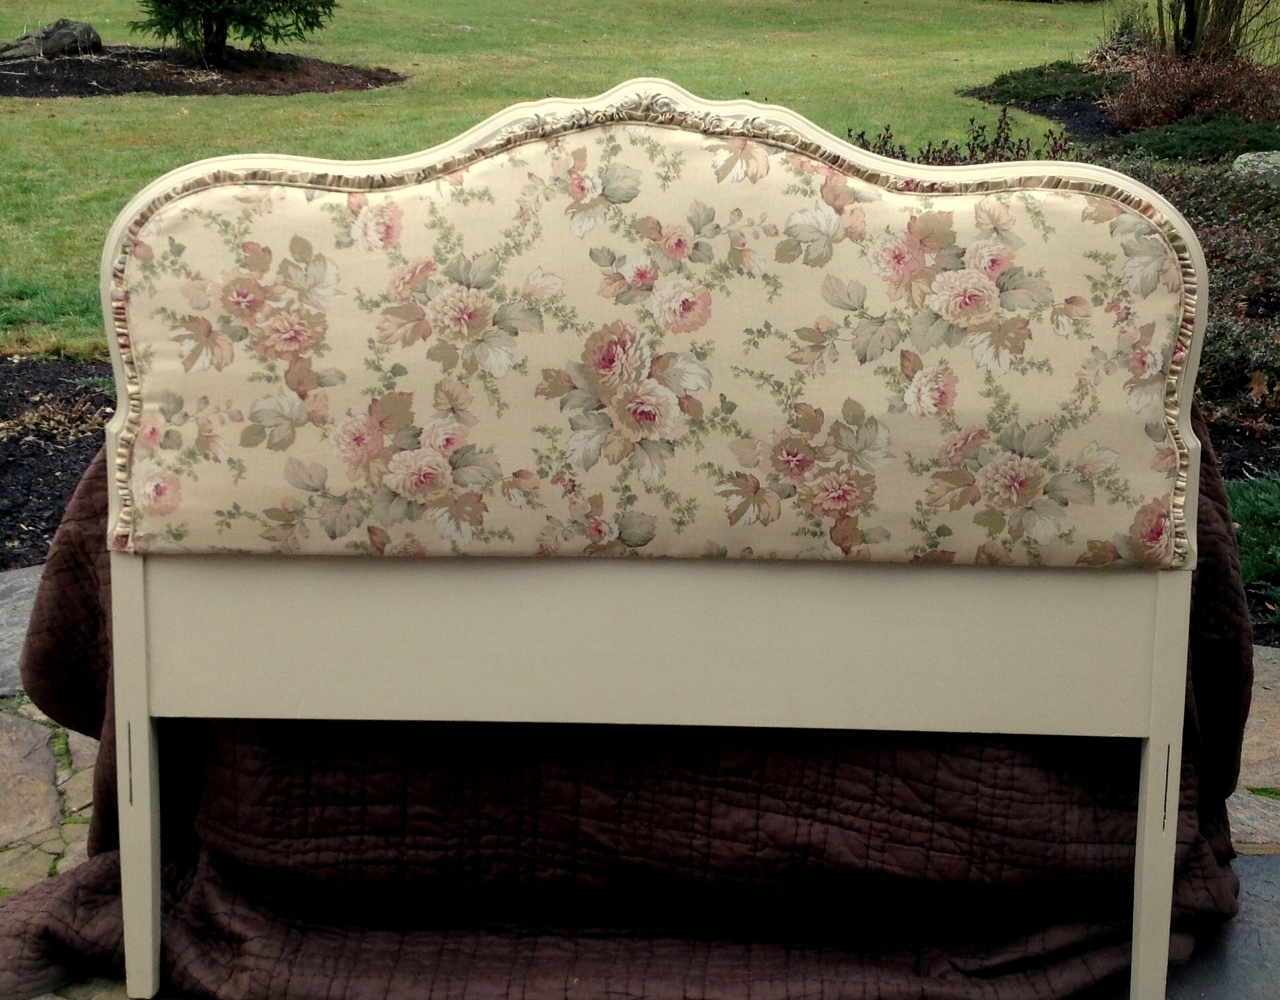 Shabby chic upholstered headboard vintage rose